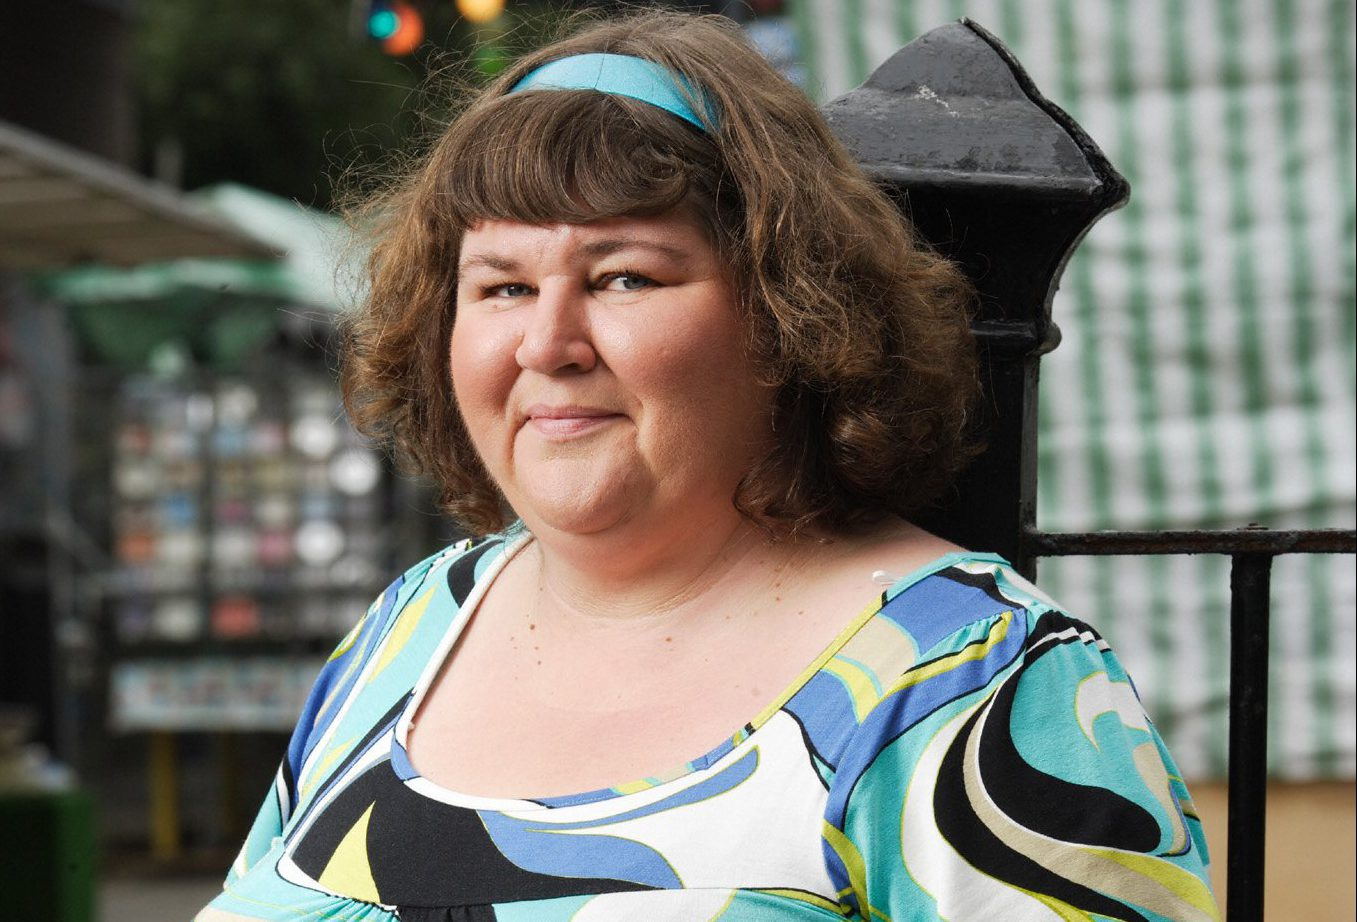 EastEnders star Cheryl Fergison hits back at Twitter bullies who thought a Jeremy Kyle guest looked like her